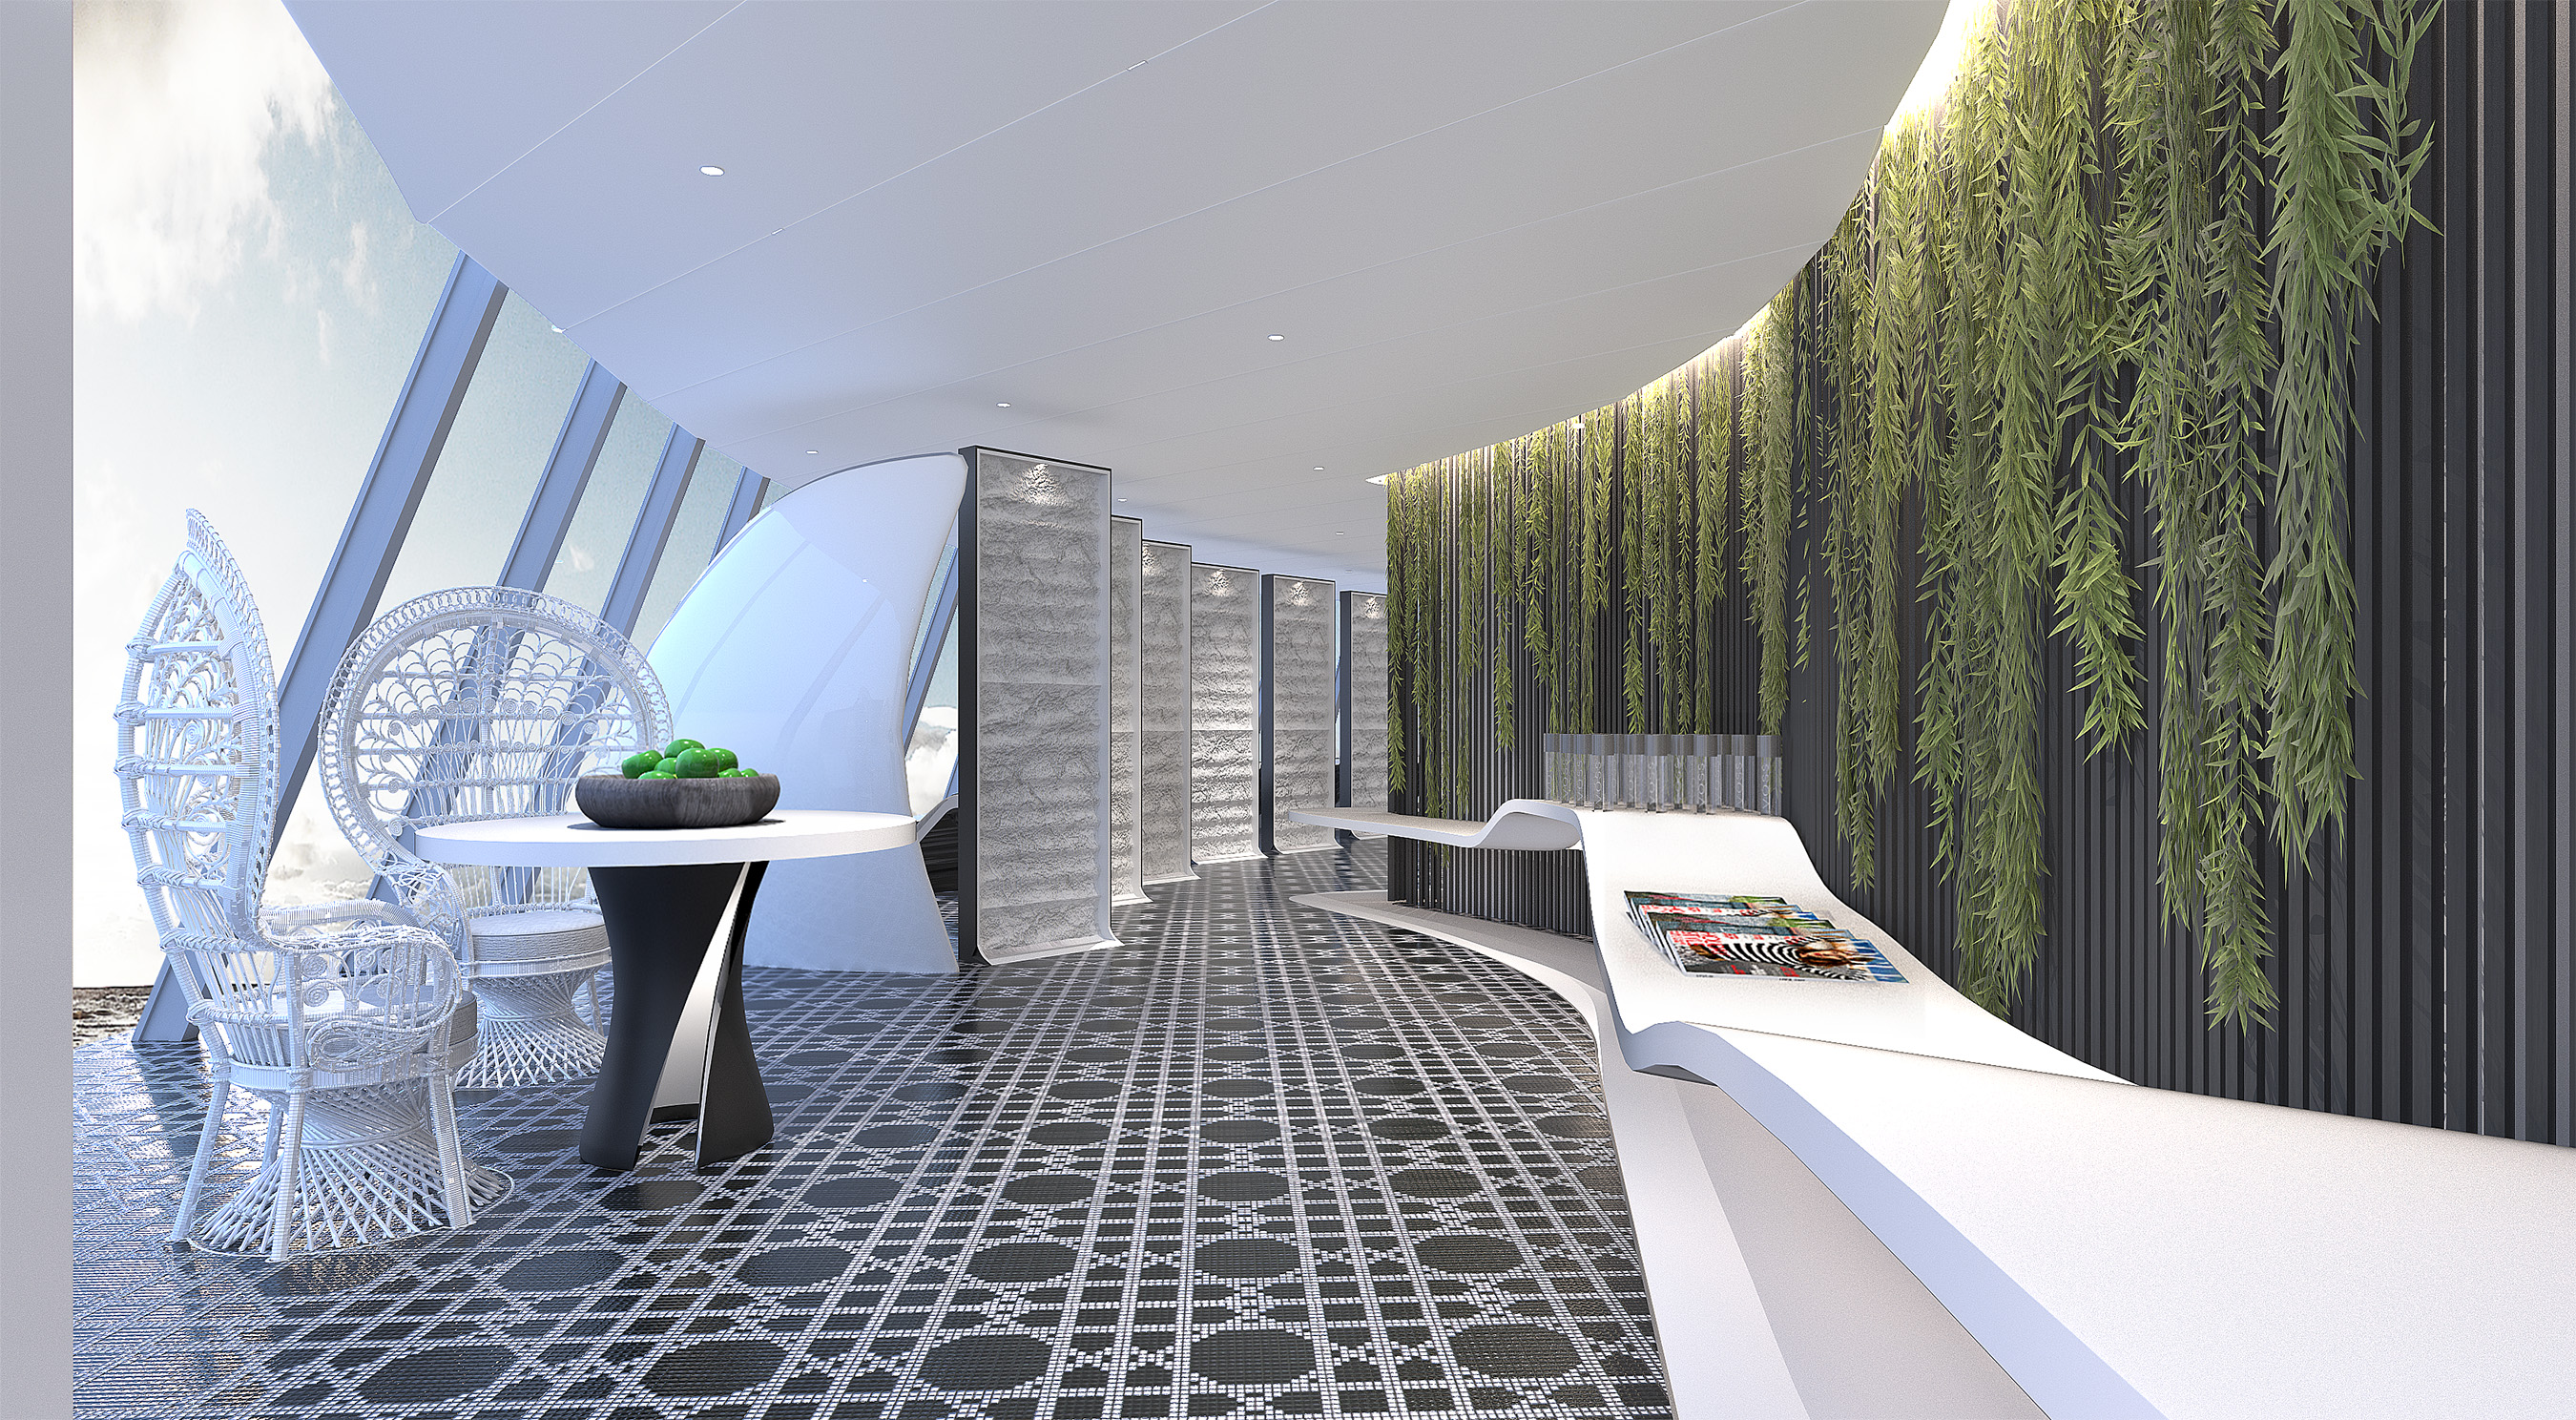 At the heart of The Spa on Celebrity Edge is the SEA Thermal Suite, a playground for the senses where connecting with fellow spa-goers is as central to the experience as time alone to focus on oneself. AquaClass guests will enjoy complimentary access to the SEA Thermal Suite and its eight distinct spaces.